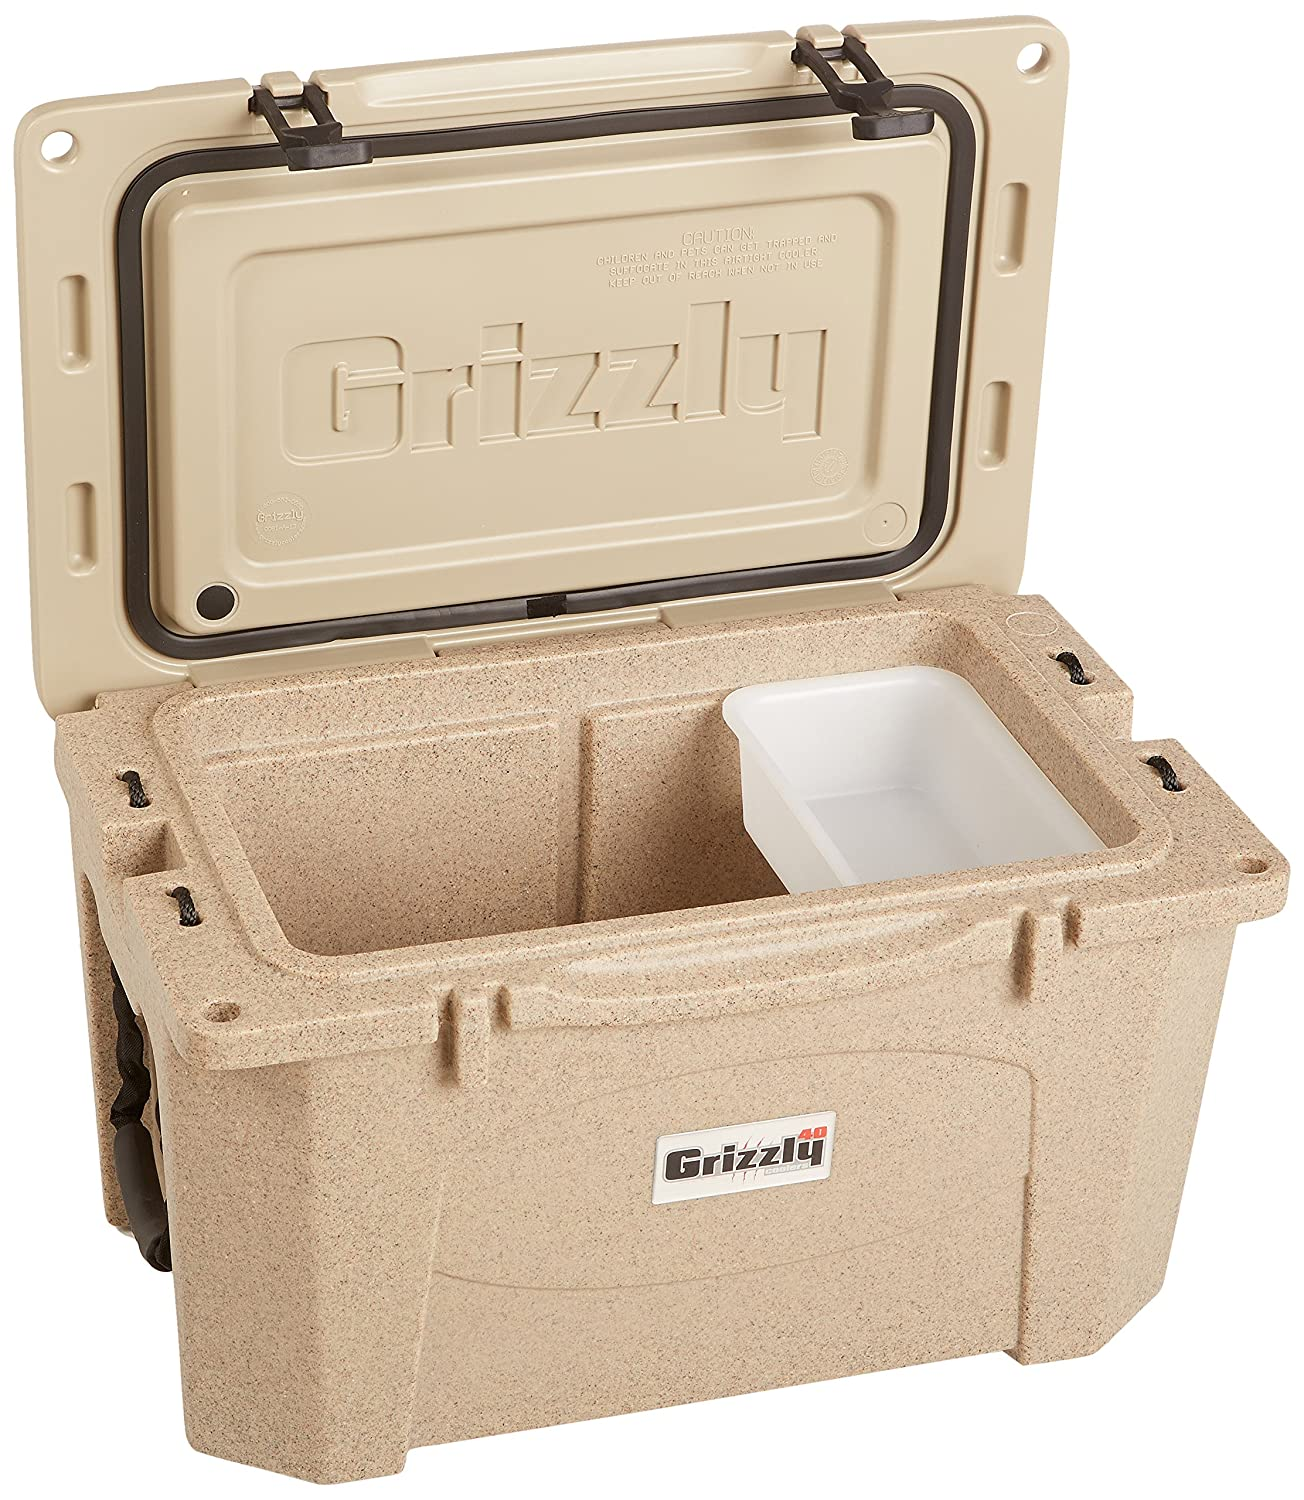 Amazon Grizzly Coolers Cooler Sandstone Tan 40 Quart